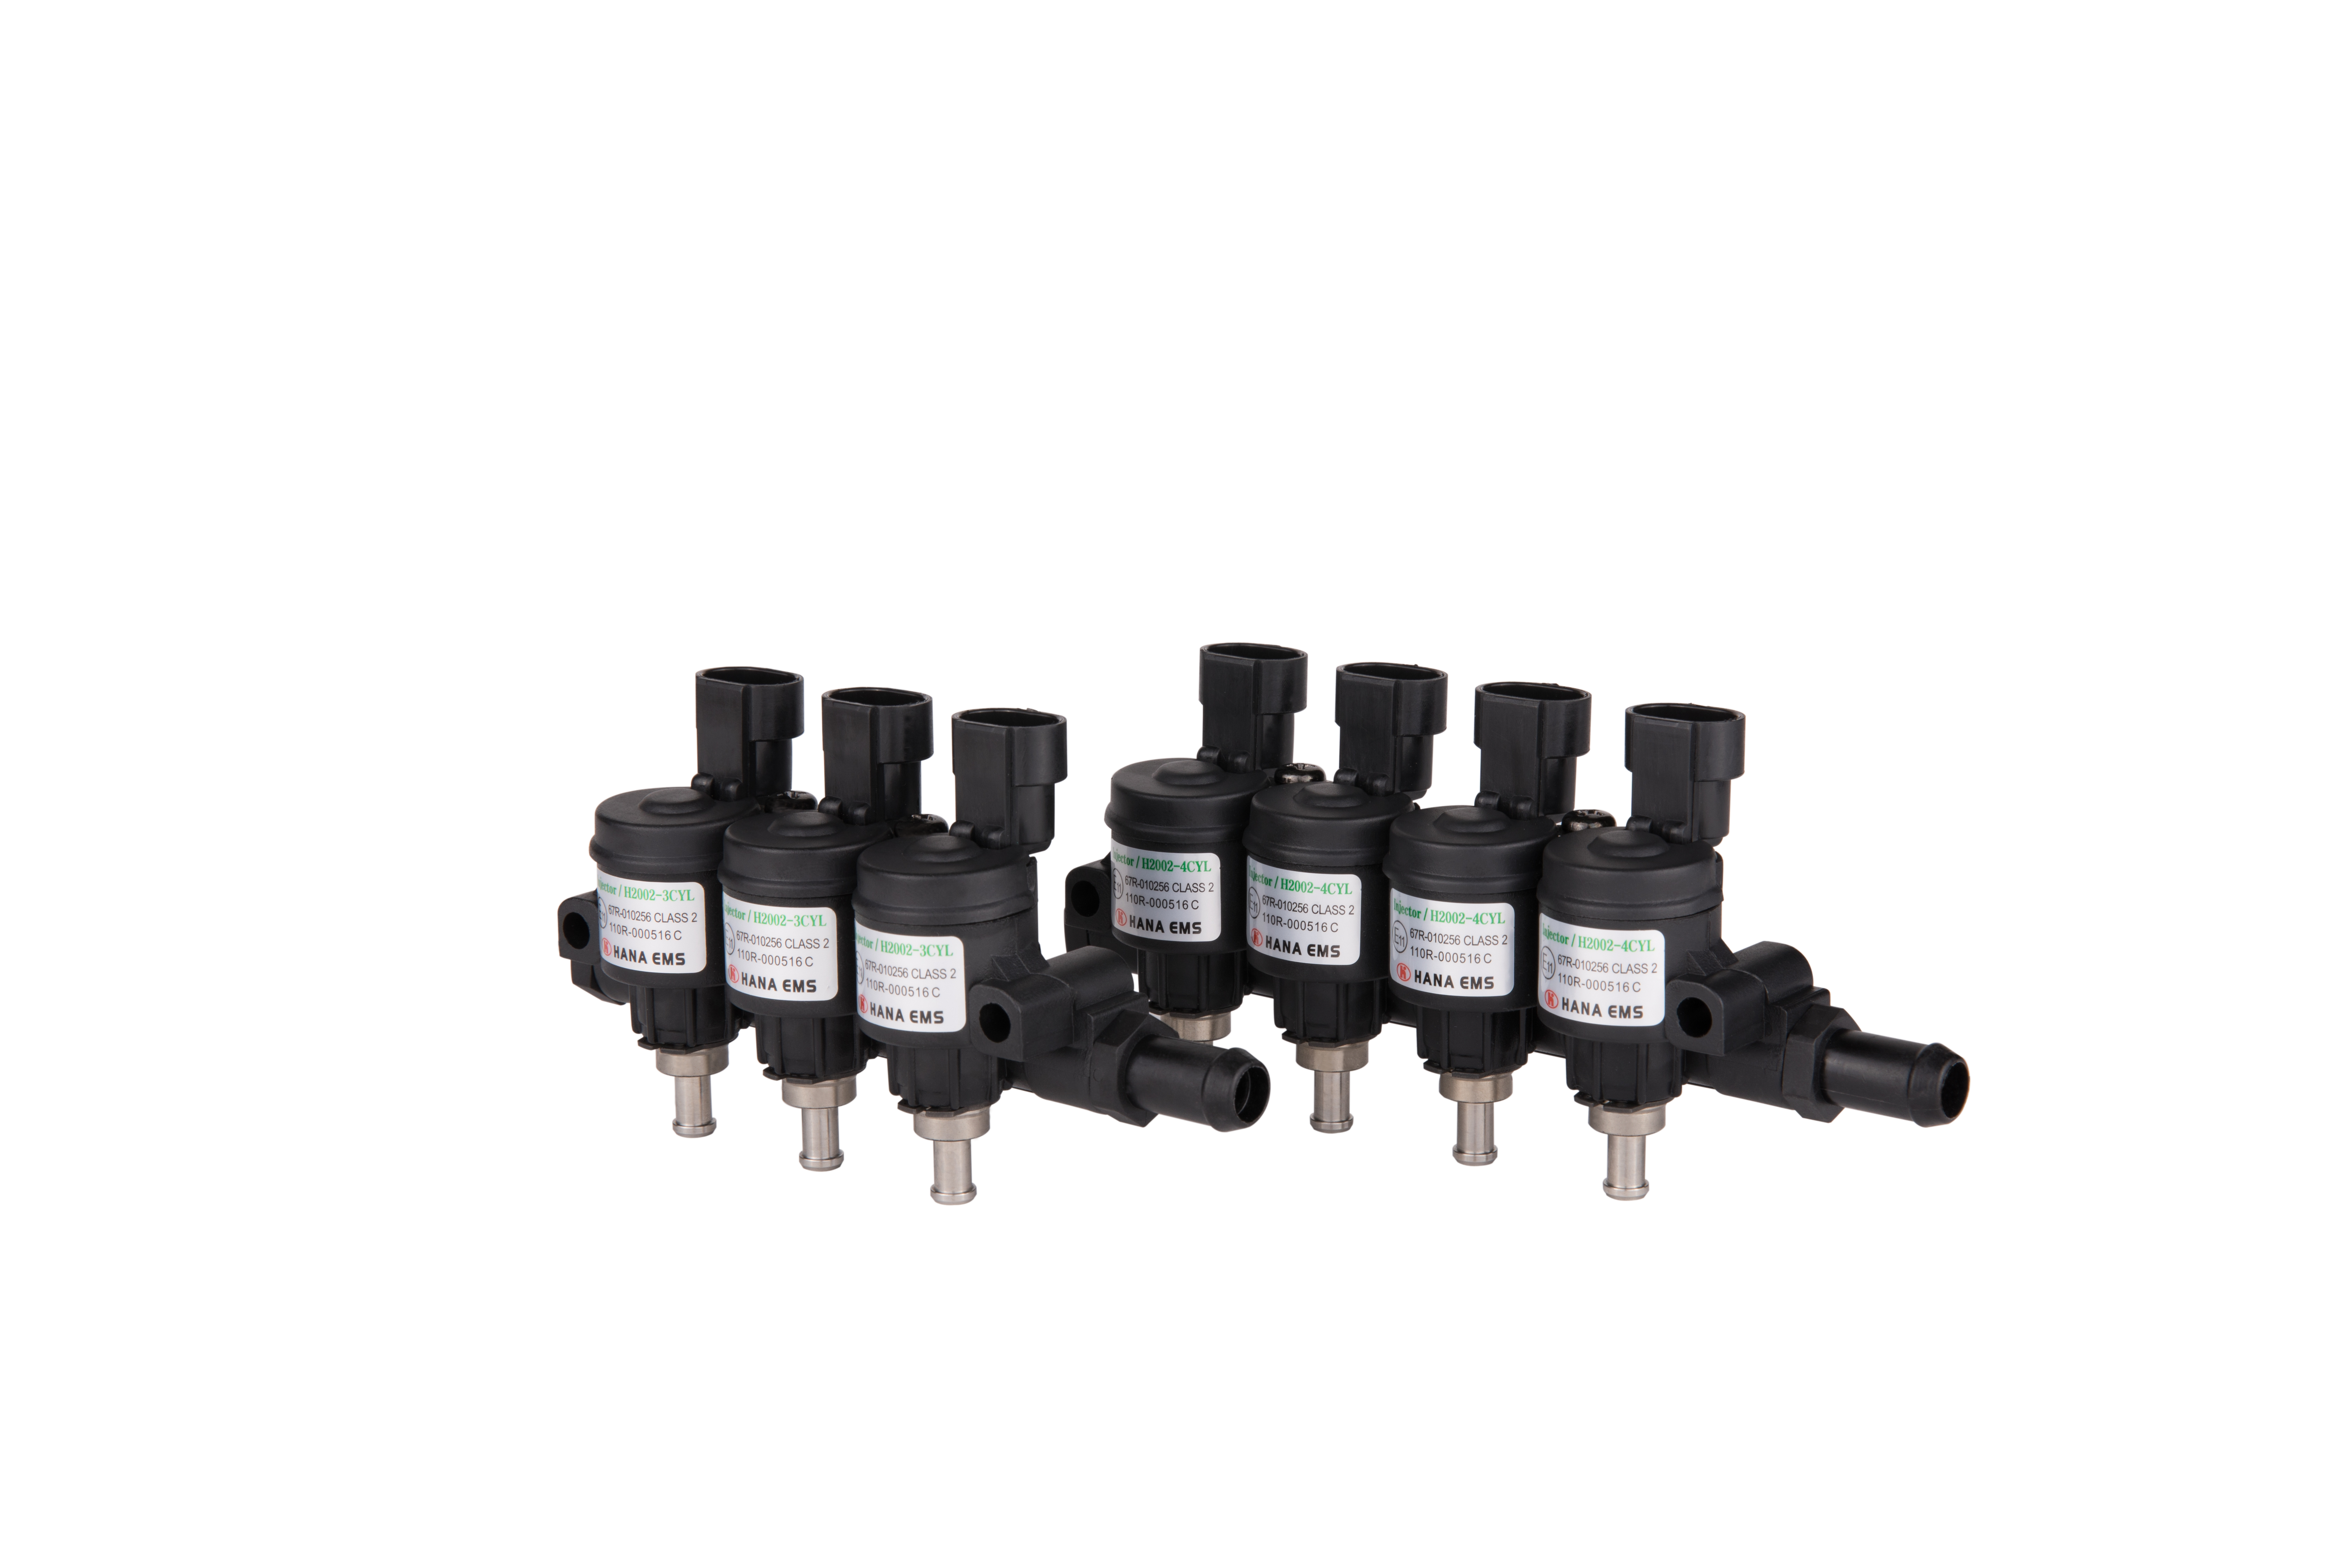 HANA H2002 is a 3 & 4 Cylinder Side Feed type injector rail. Accurate fuel injection and engine resp...